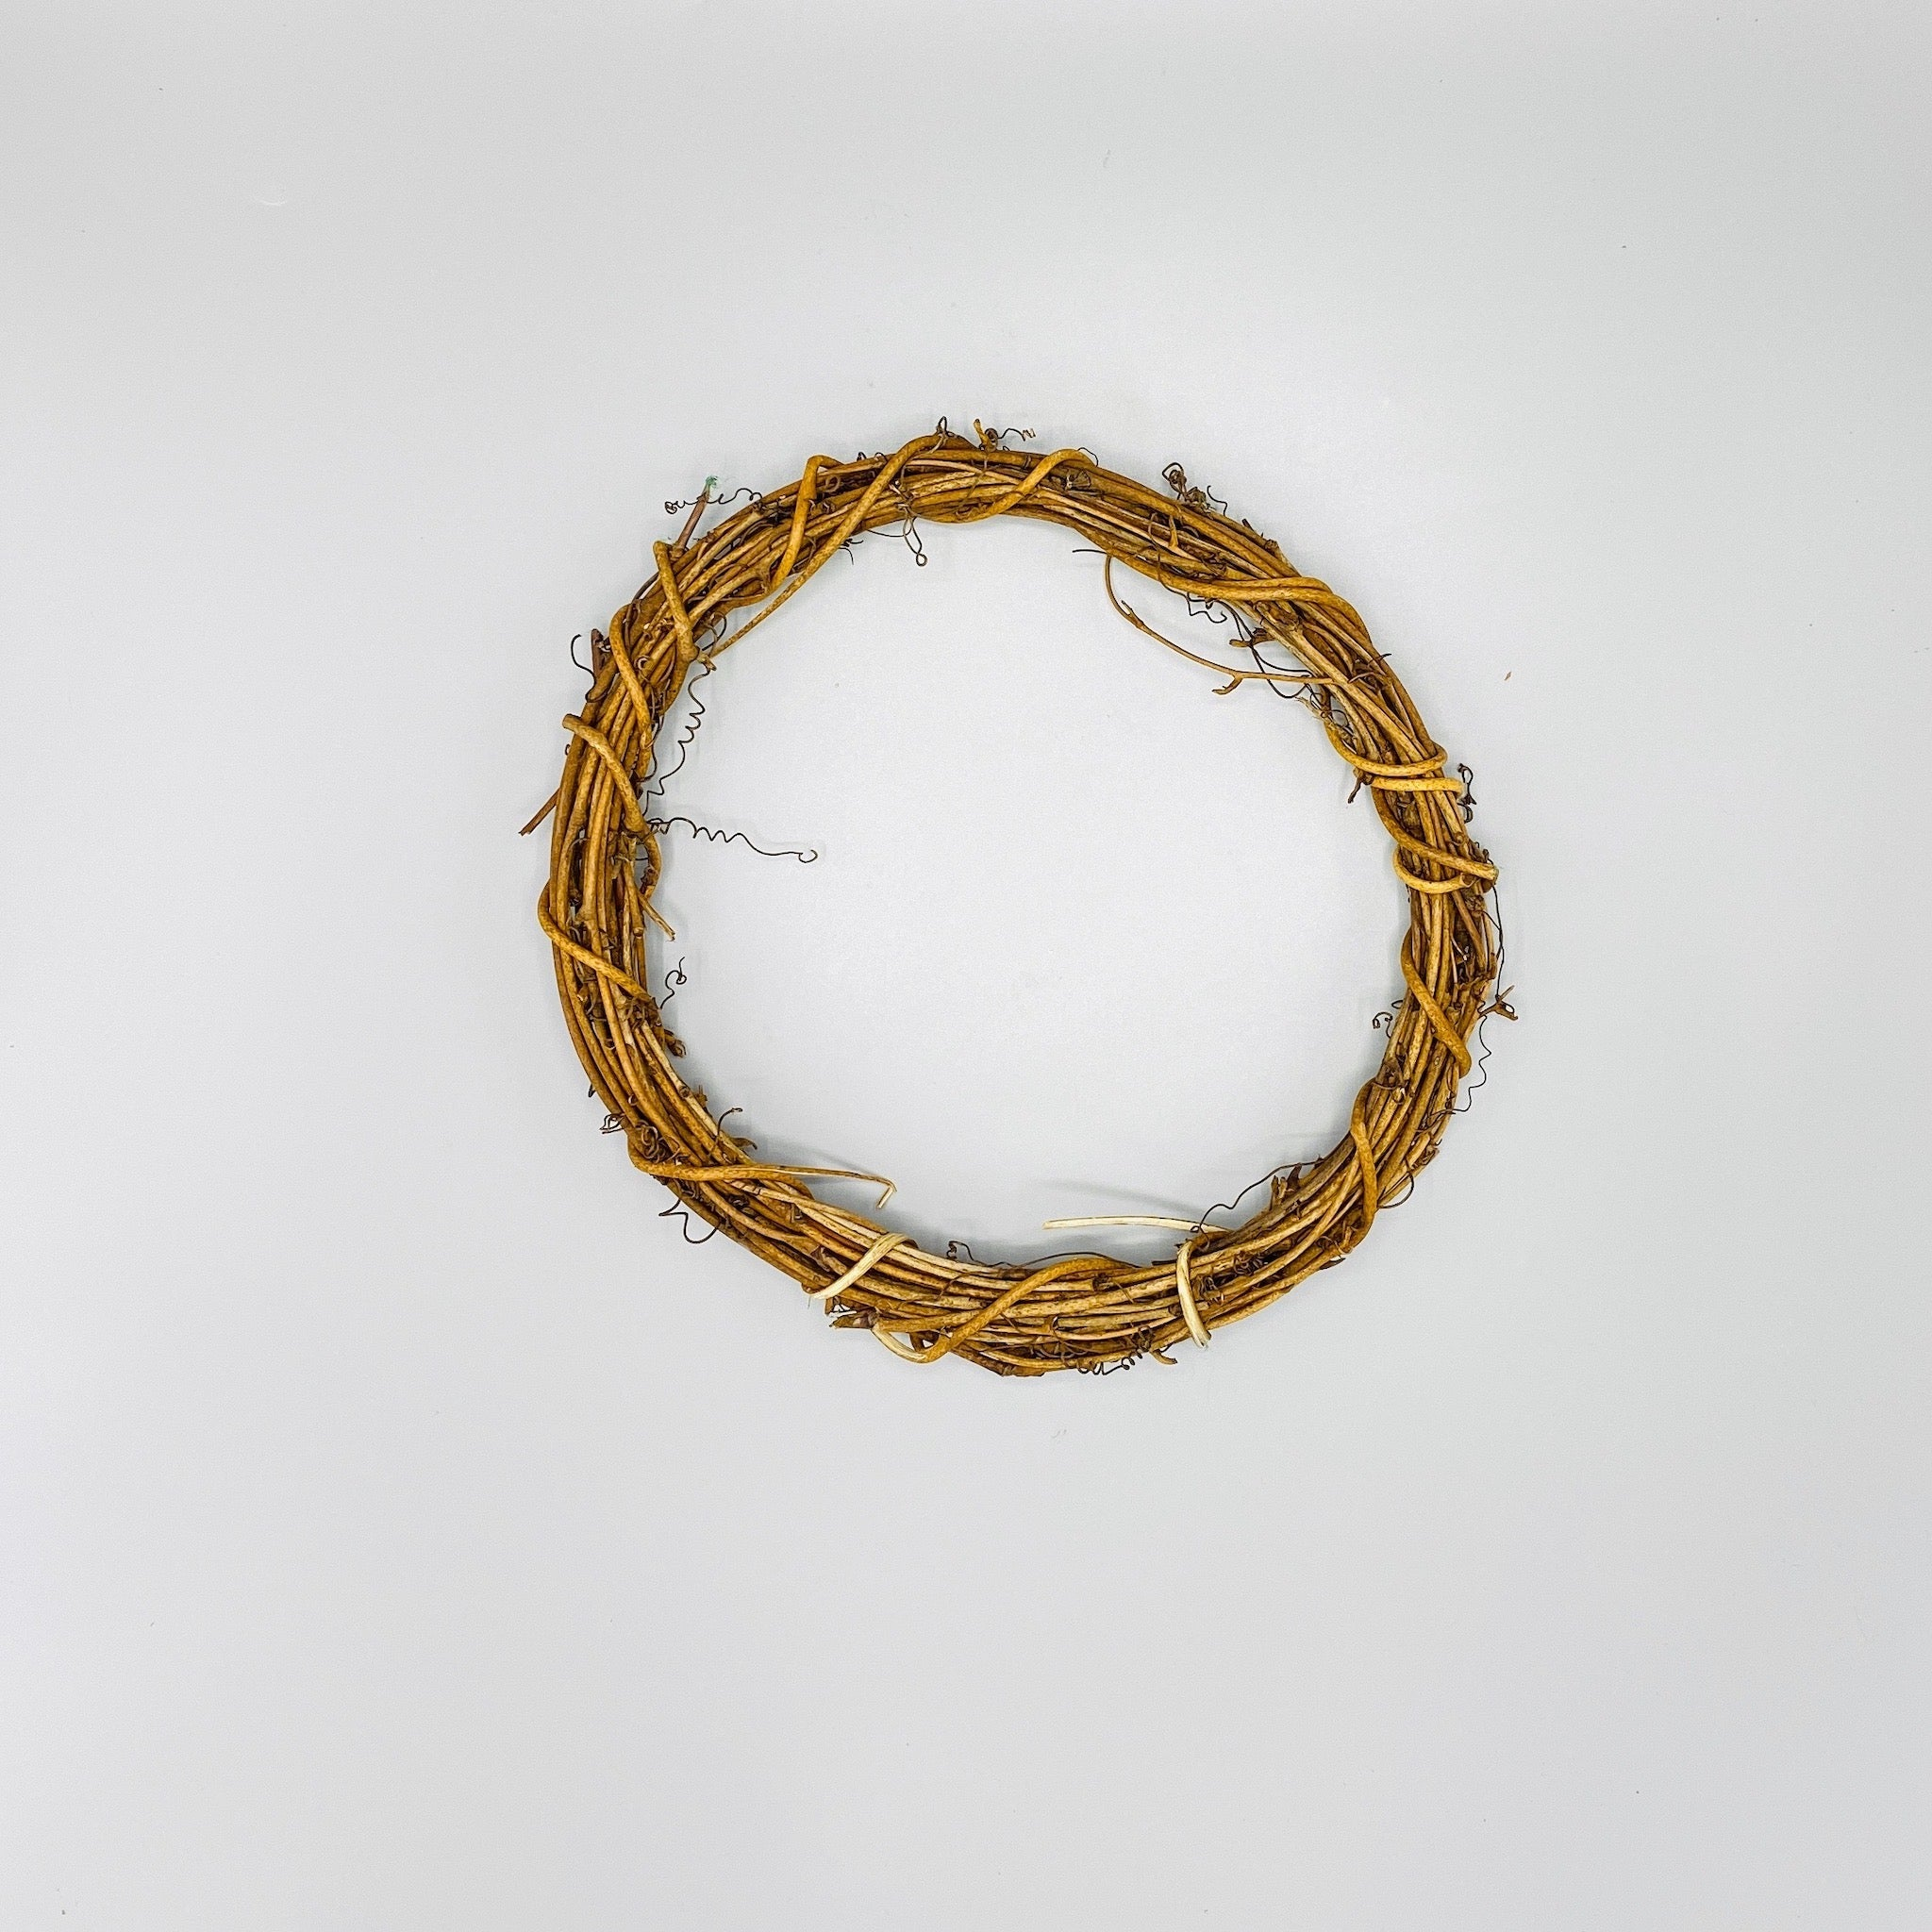 Natural Woven Vine Wreath - N á t t ú r a l